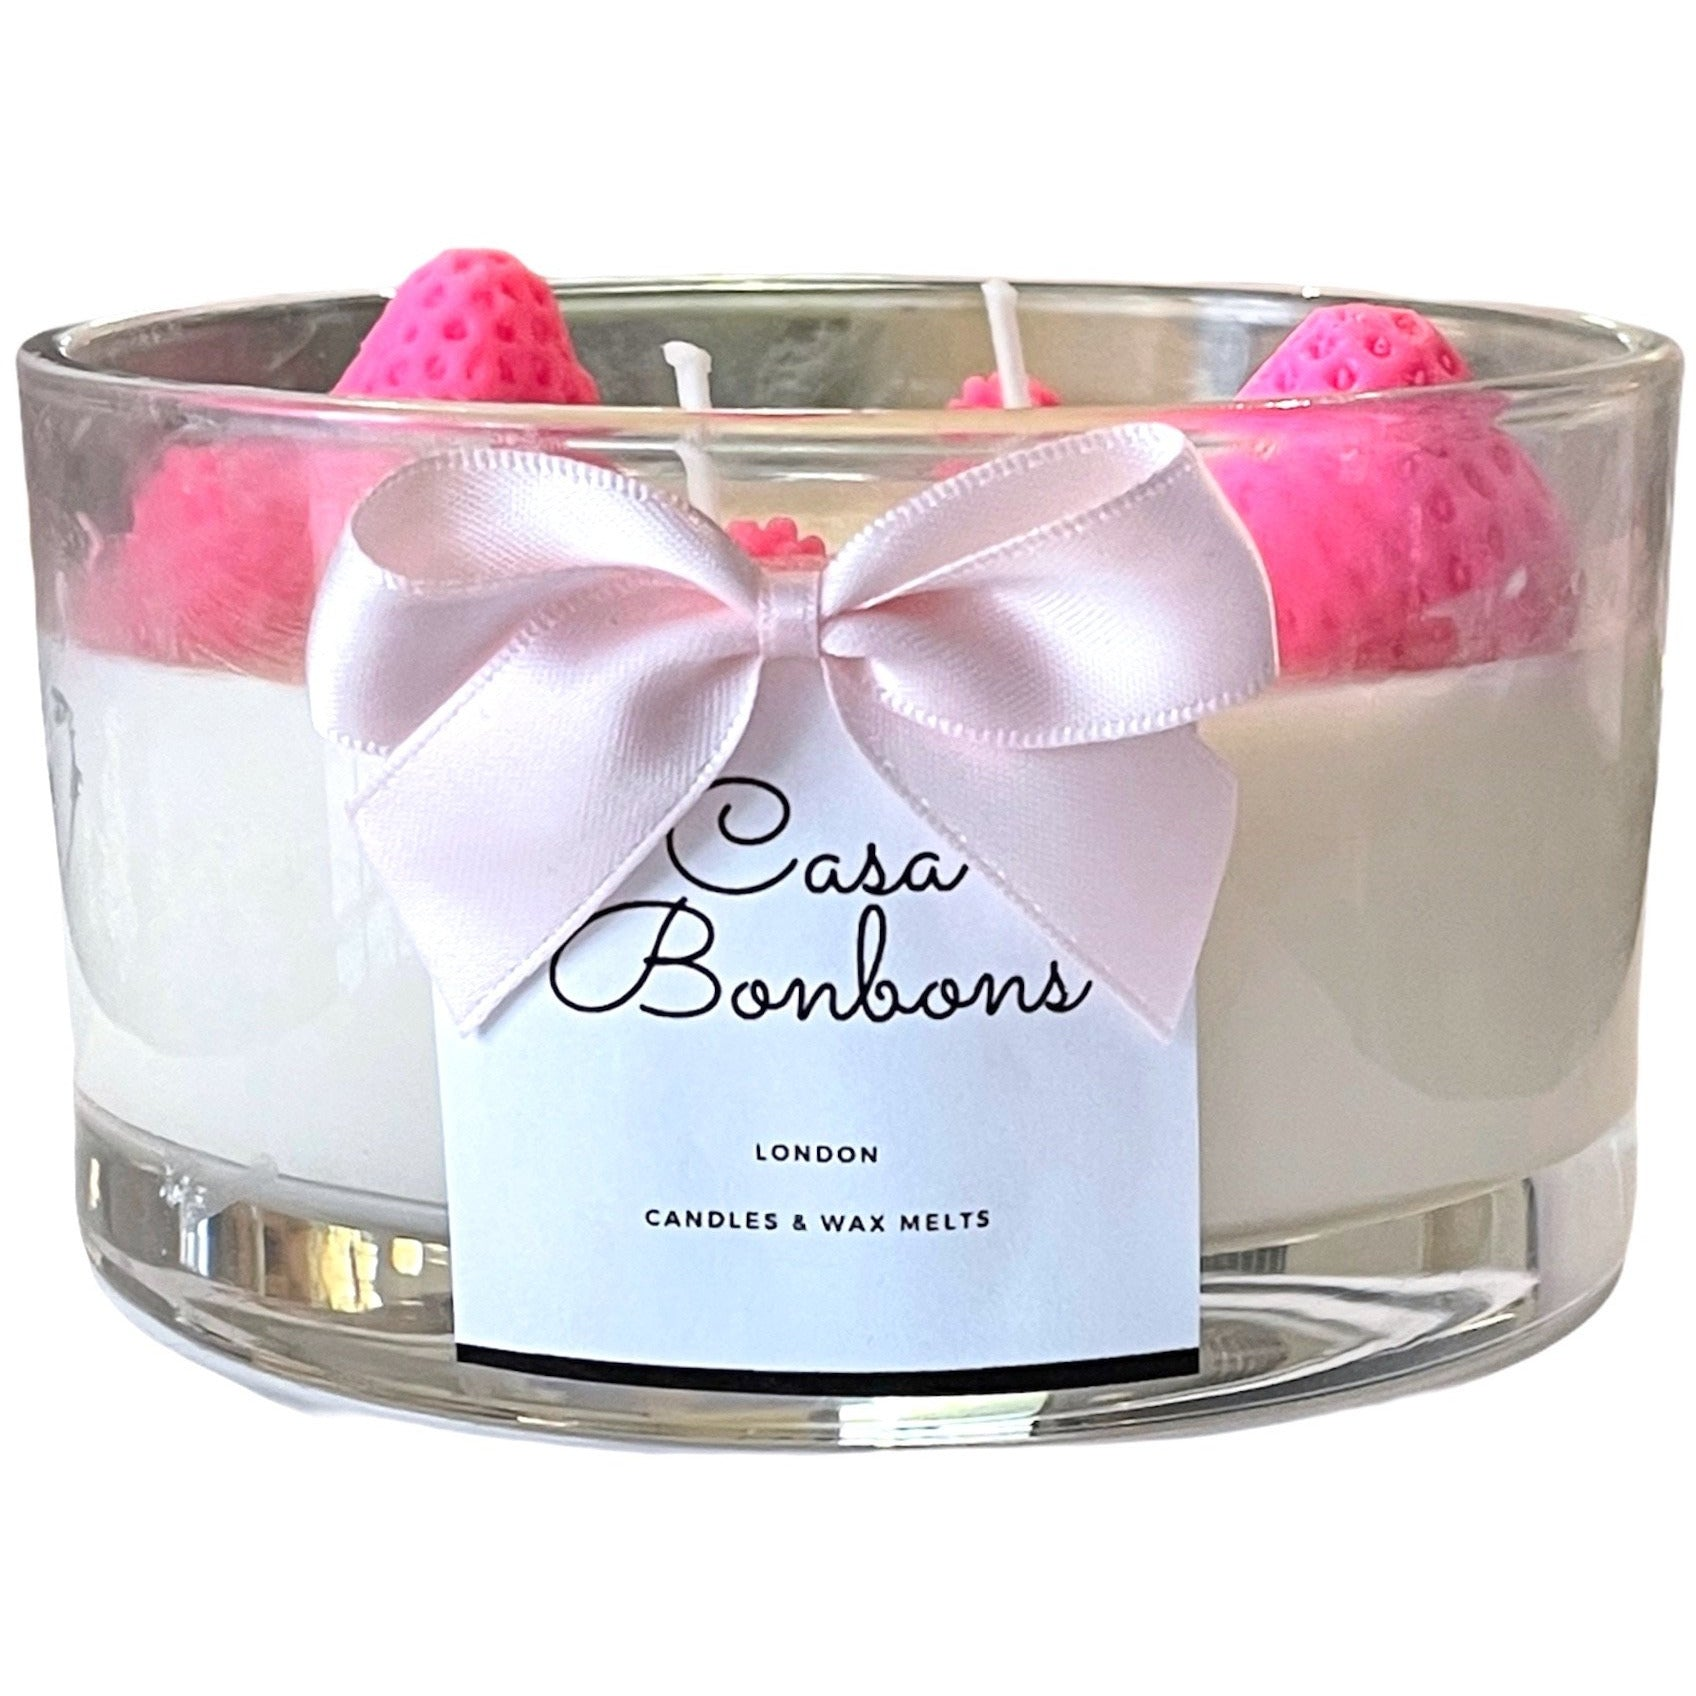 LARGE Vanilla & Strawberry gentle Scented Double Wicker Candle in 50CL Glass Jar with strawberry design on the top,  PRE ORDER delivery from middle March - natoorio